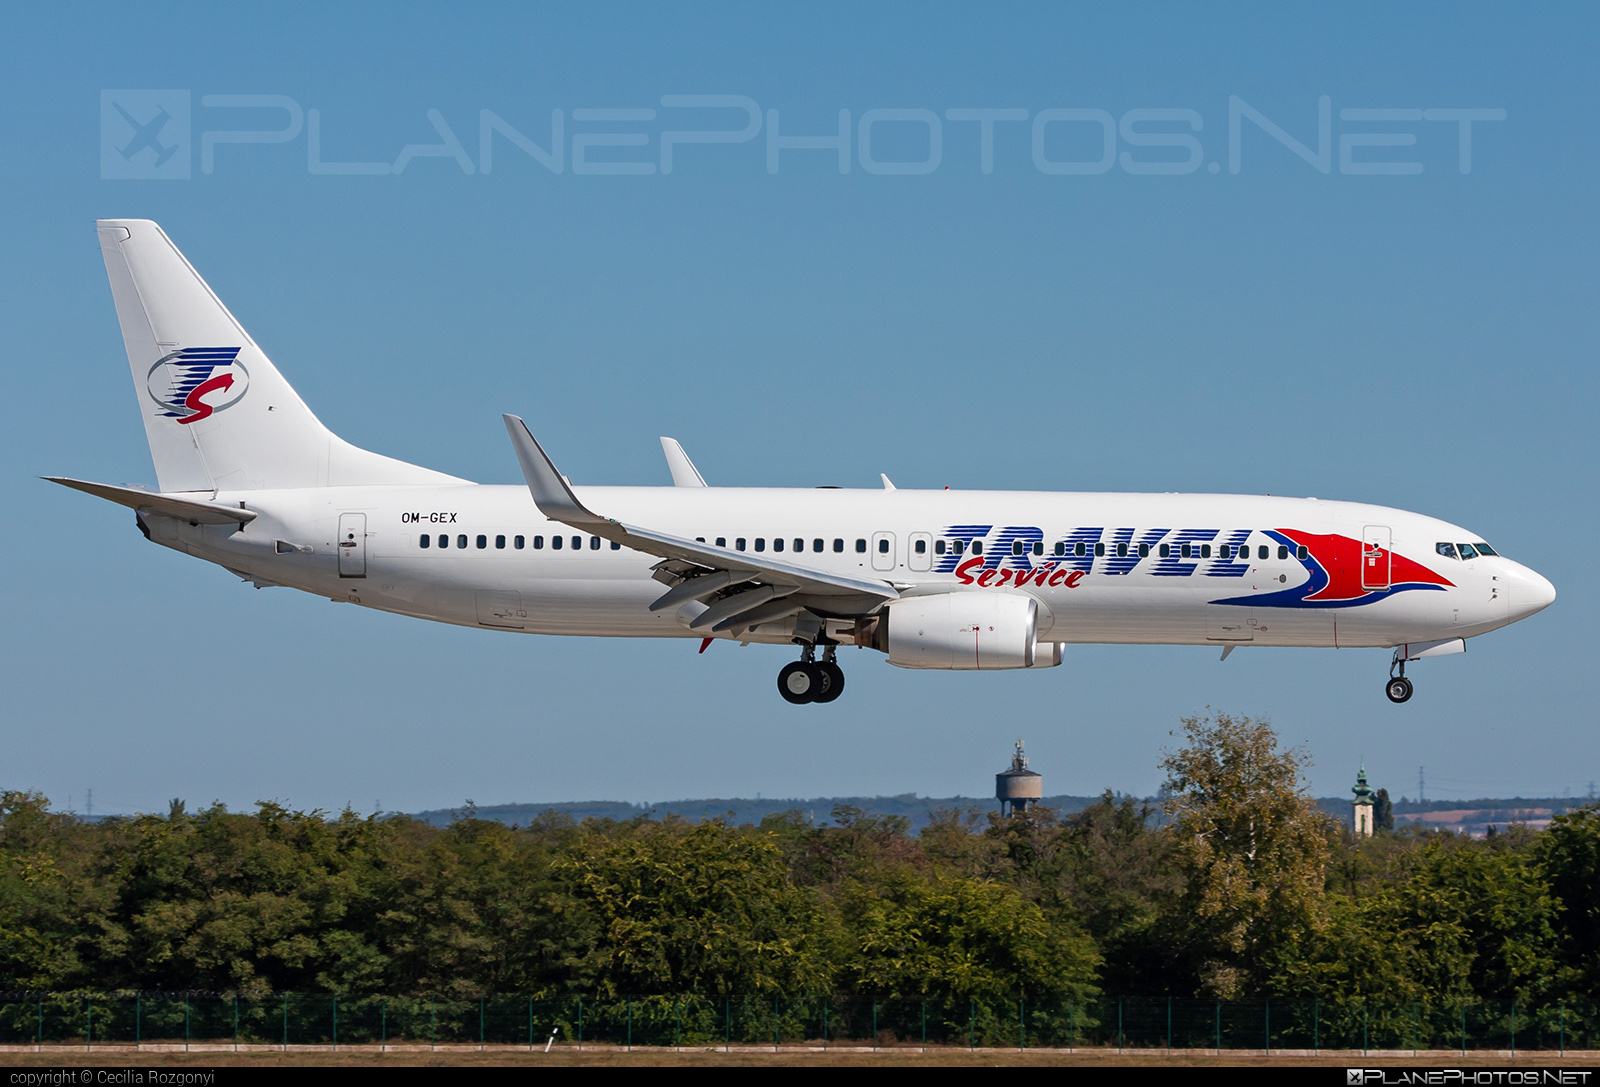 Boeing 737-800 - OM-GEX operated by AirExplore #airexplore #b737 #b737nextgen #b737ng #boeing #boeing737